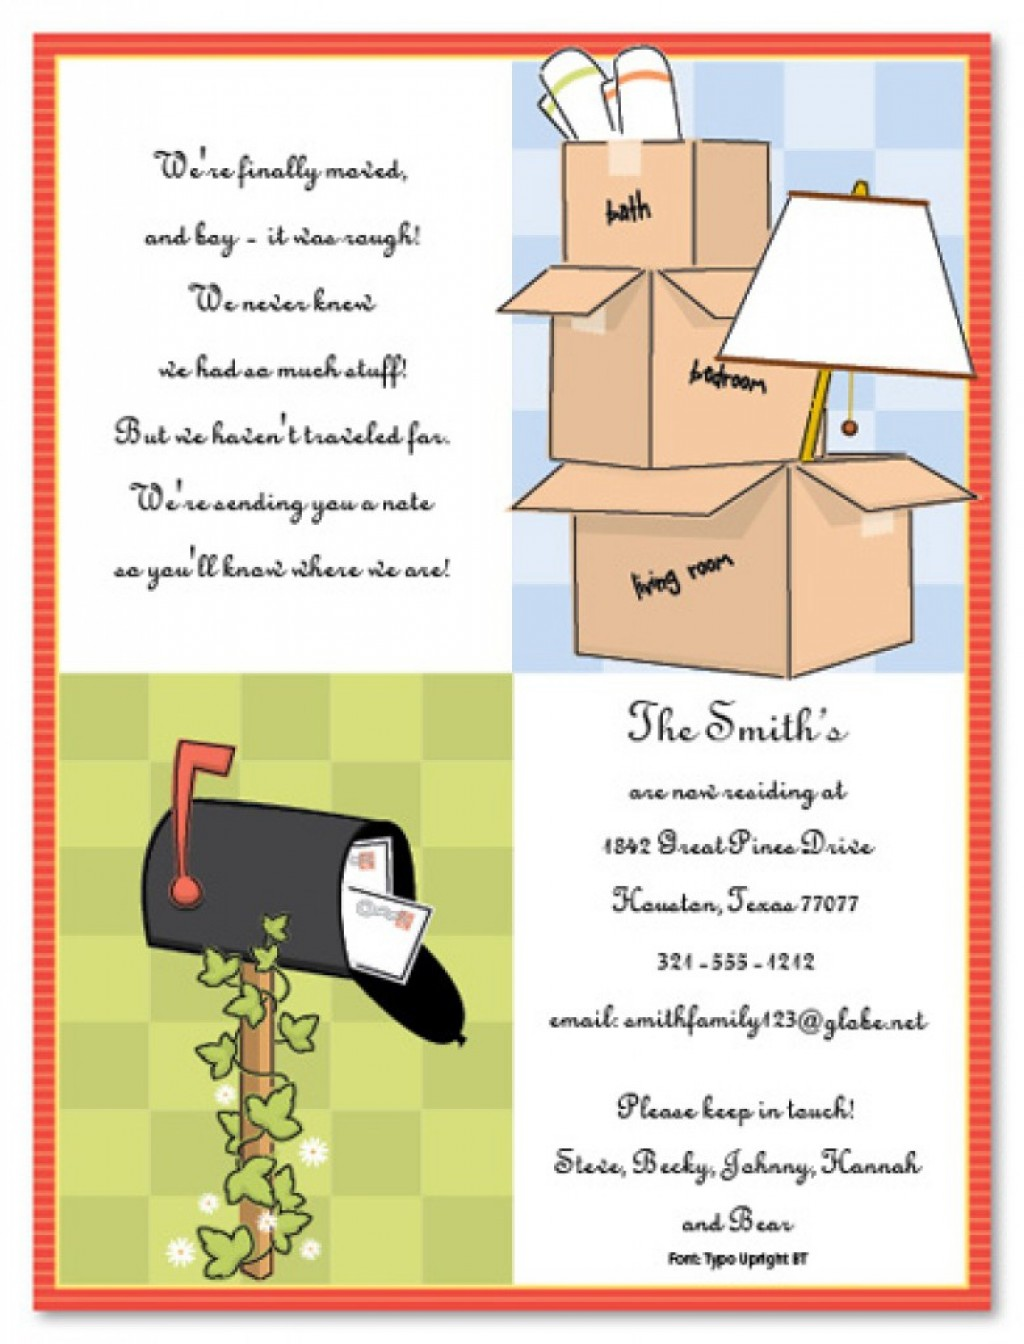 005 Remarkable Housewarming Party Invitation Template High Def  Templates Free Download CardLarge